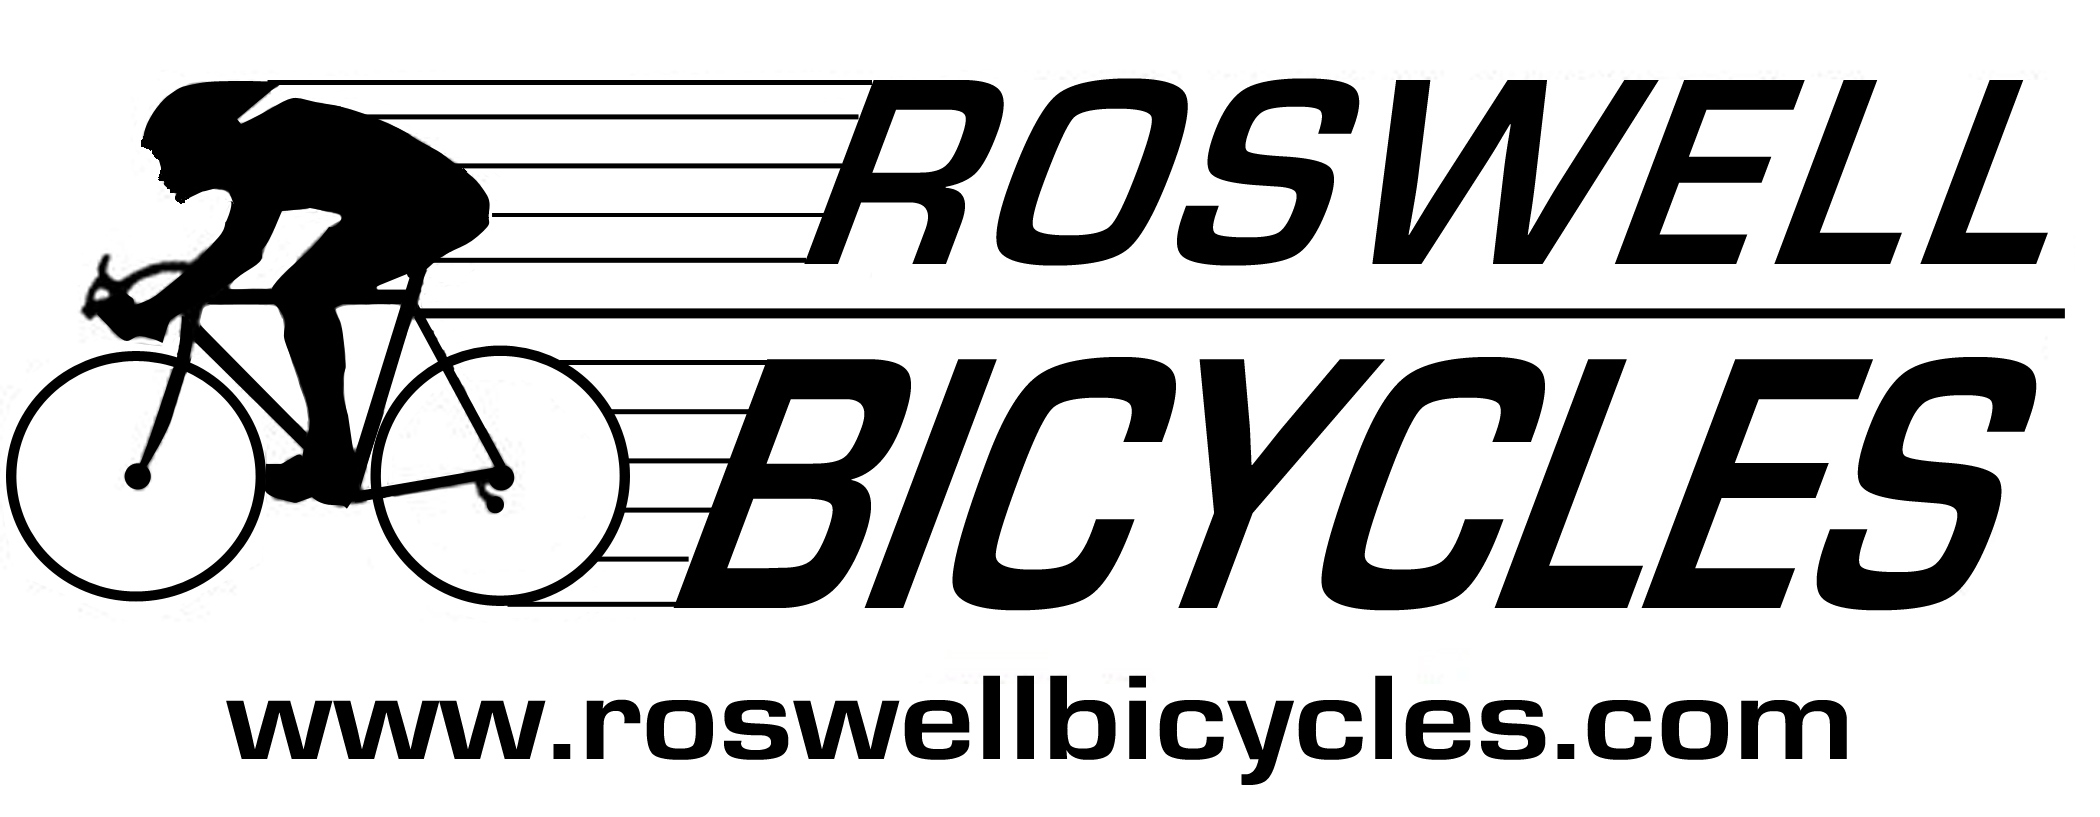 Roswell Bikes Cropped